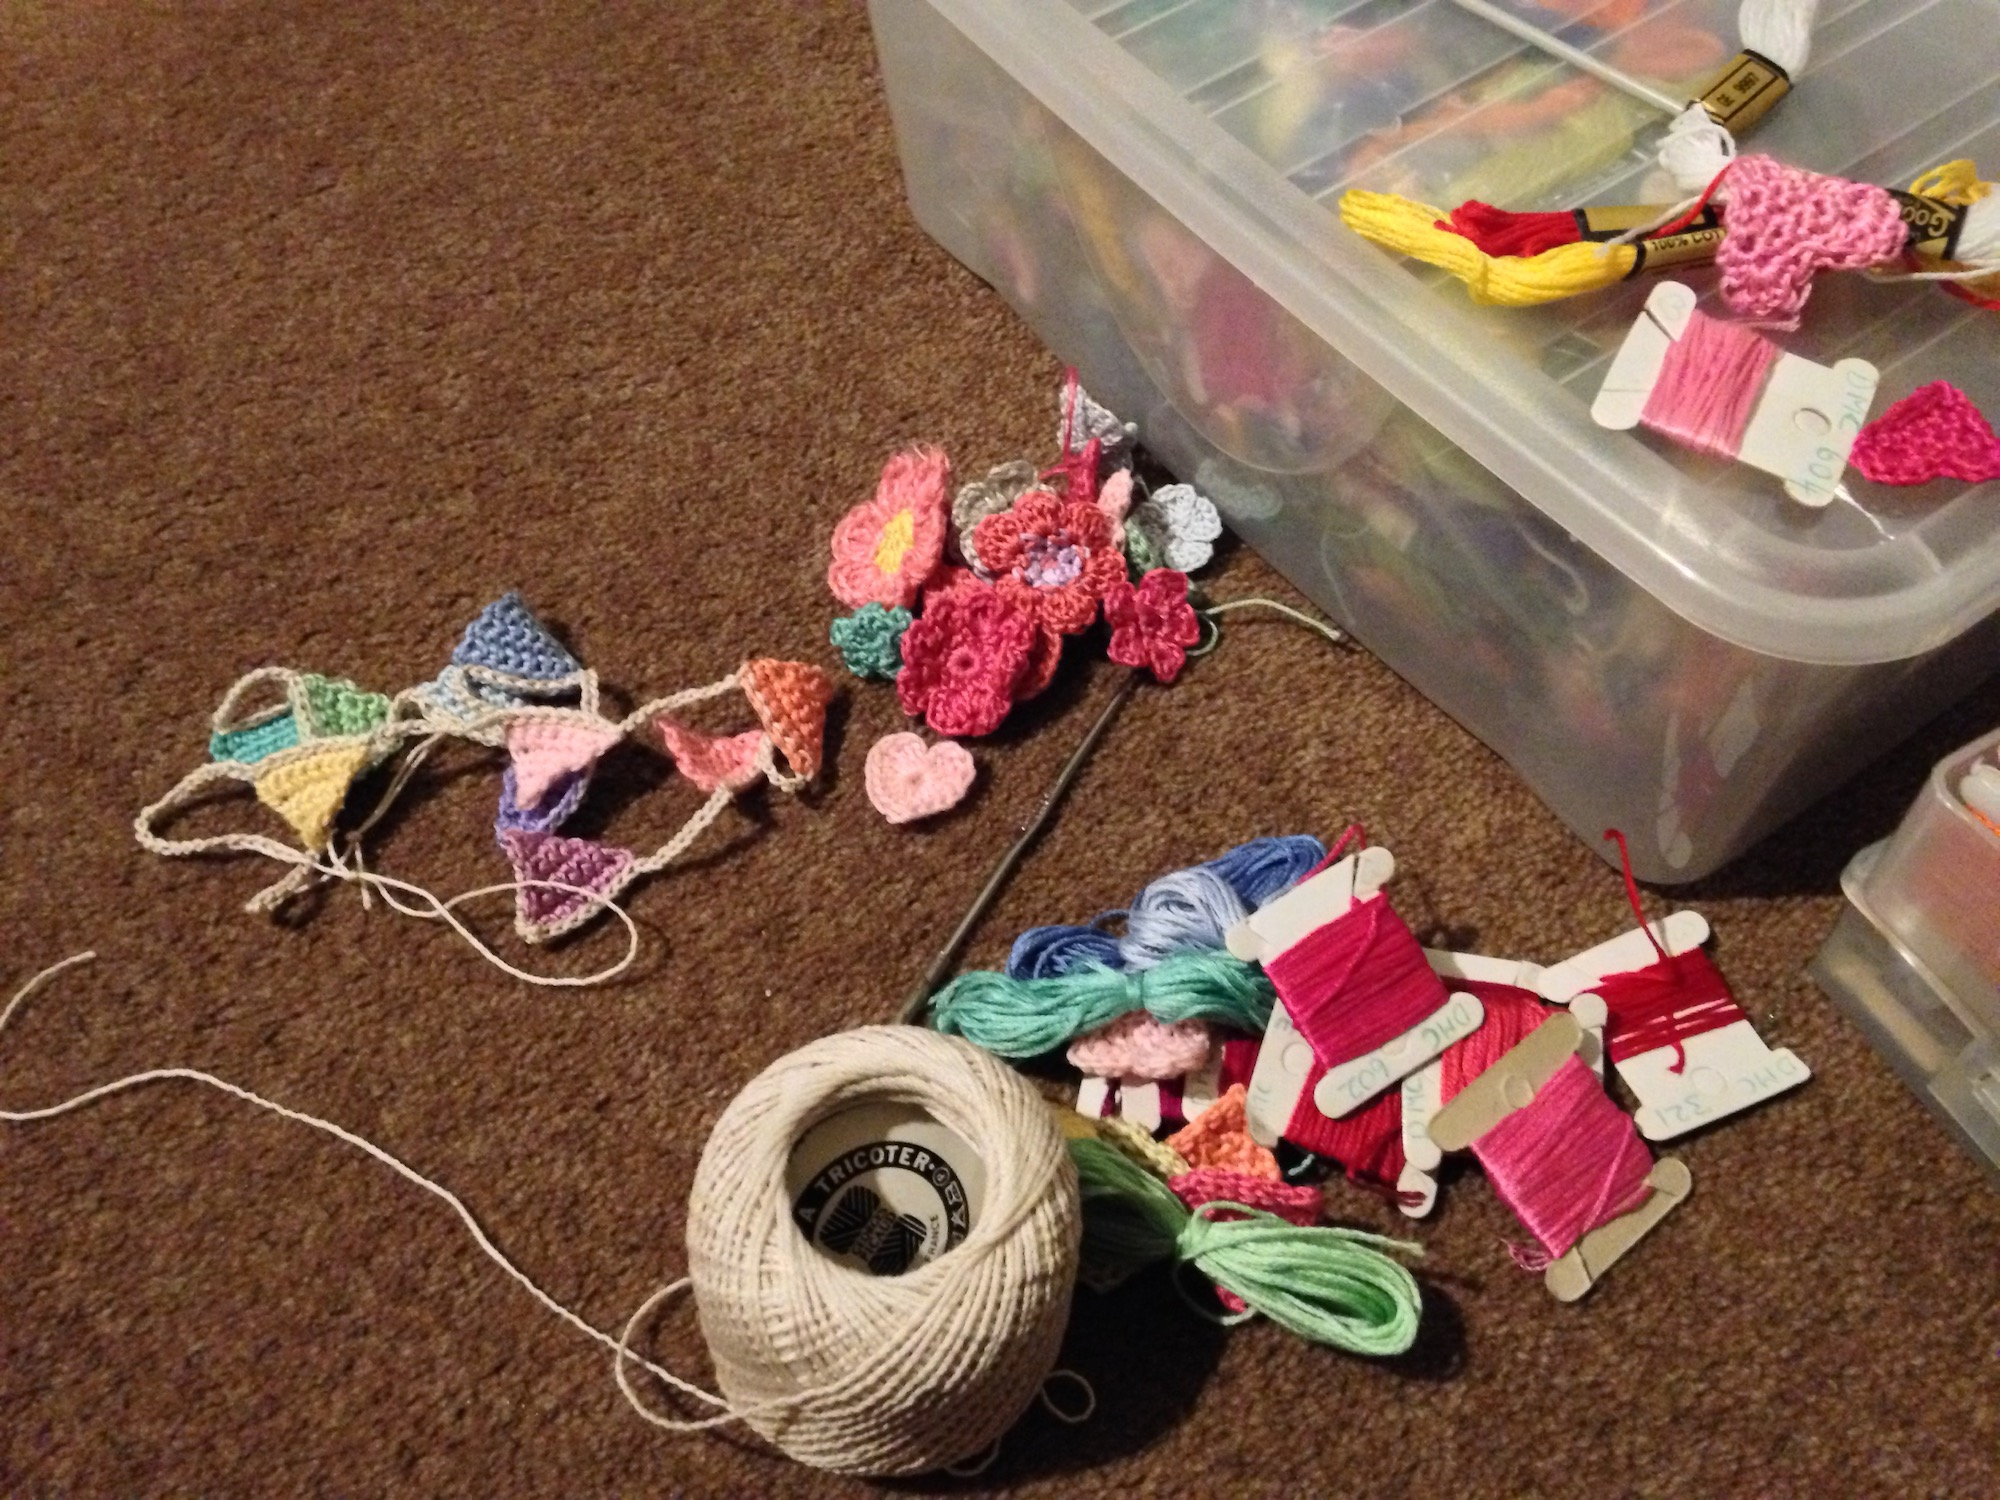 All things tiny and crocheted.